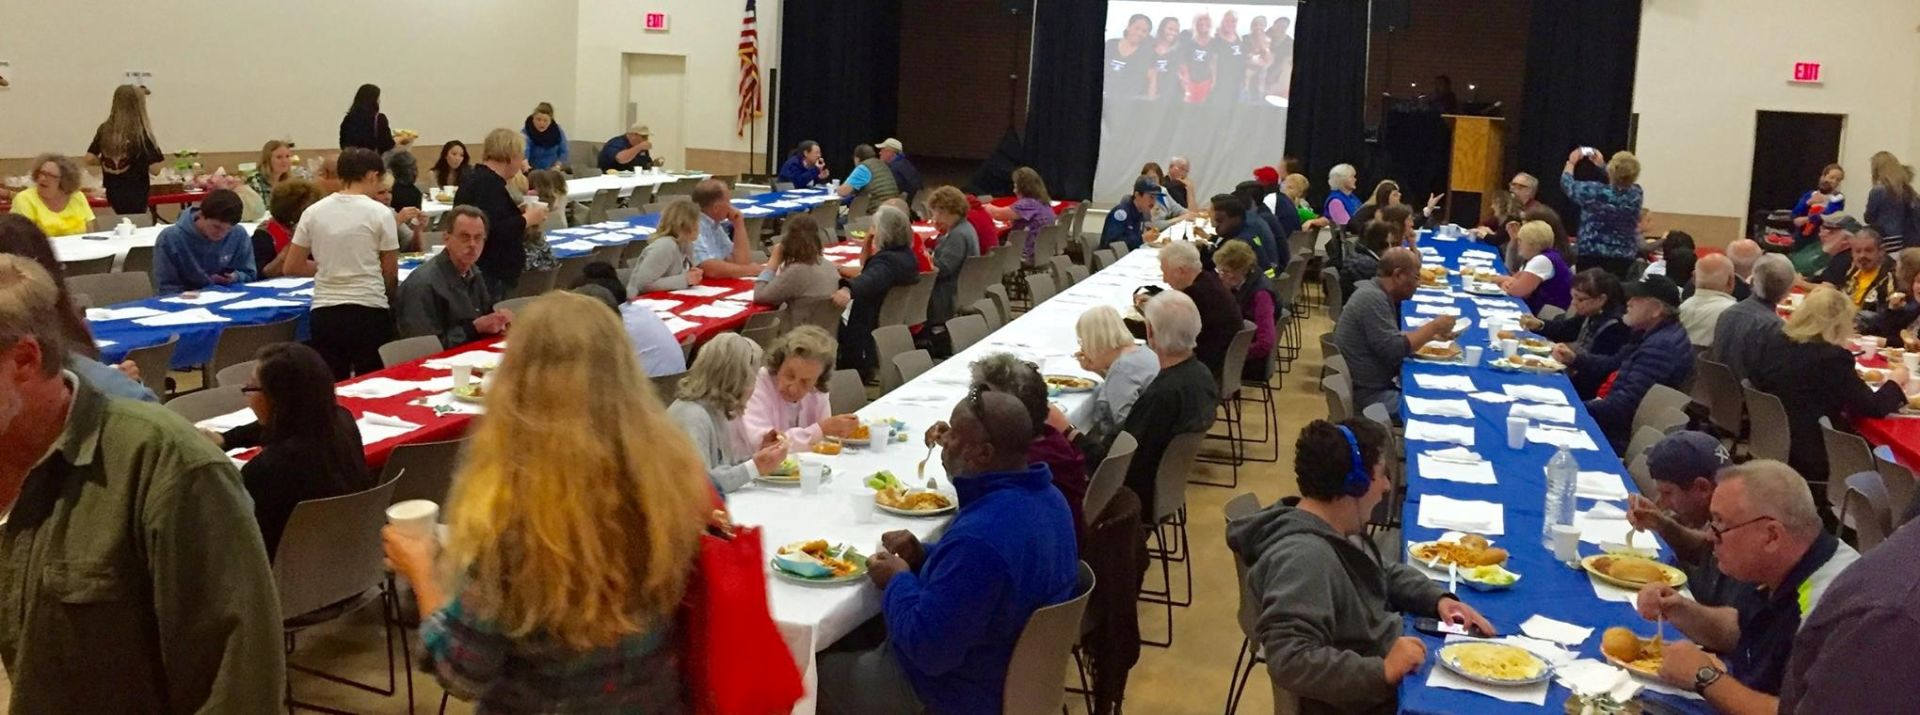 48TH ANNUAL SPAGHETTI DINNER (Torrance Fire Fighters Association)